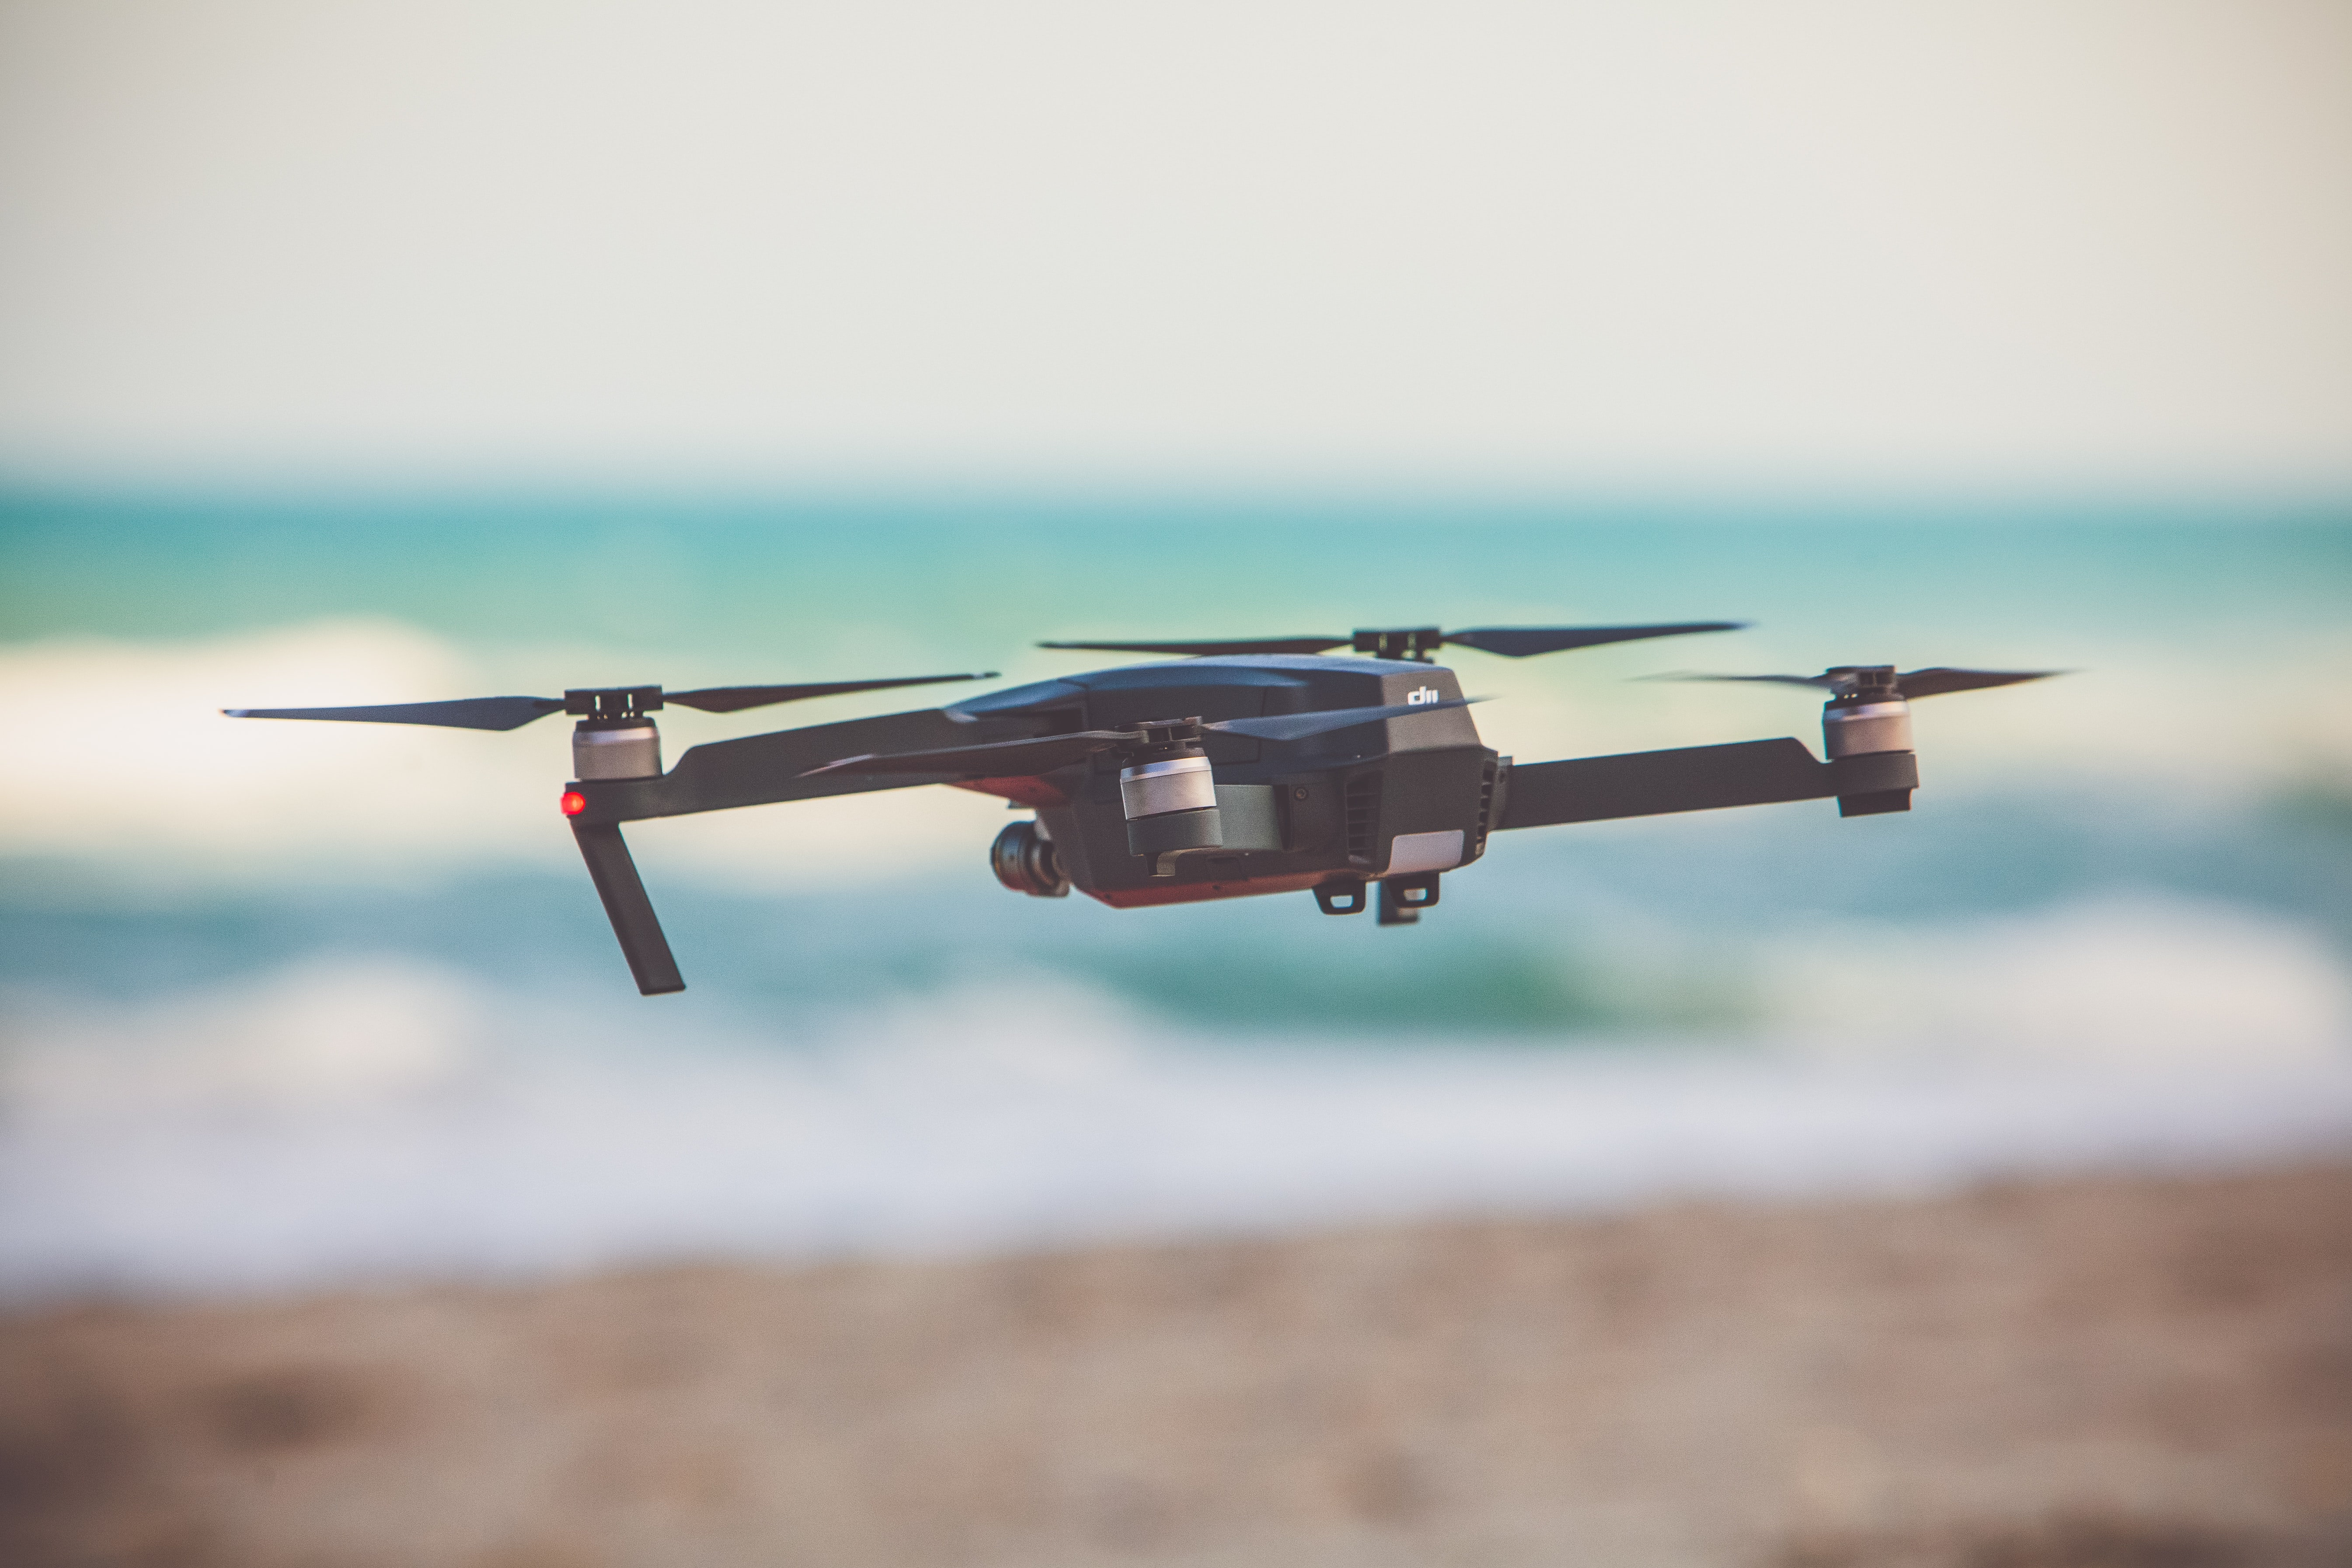 A drone hovering at the beach with a blurred background.